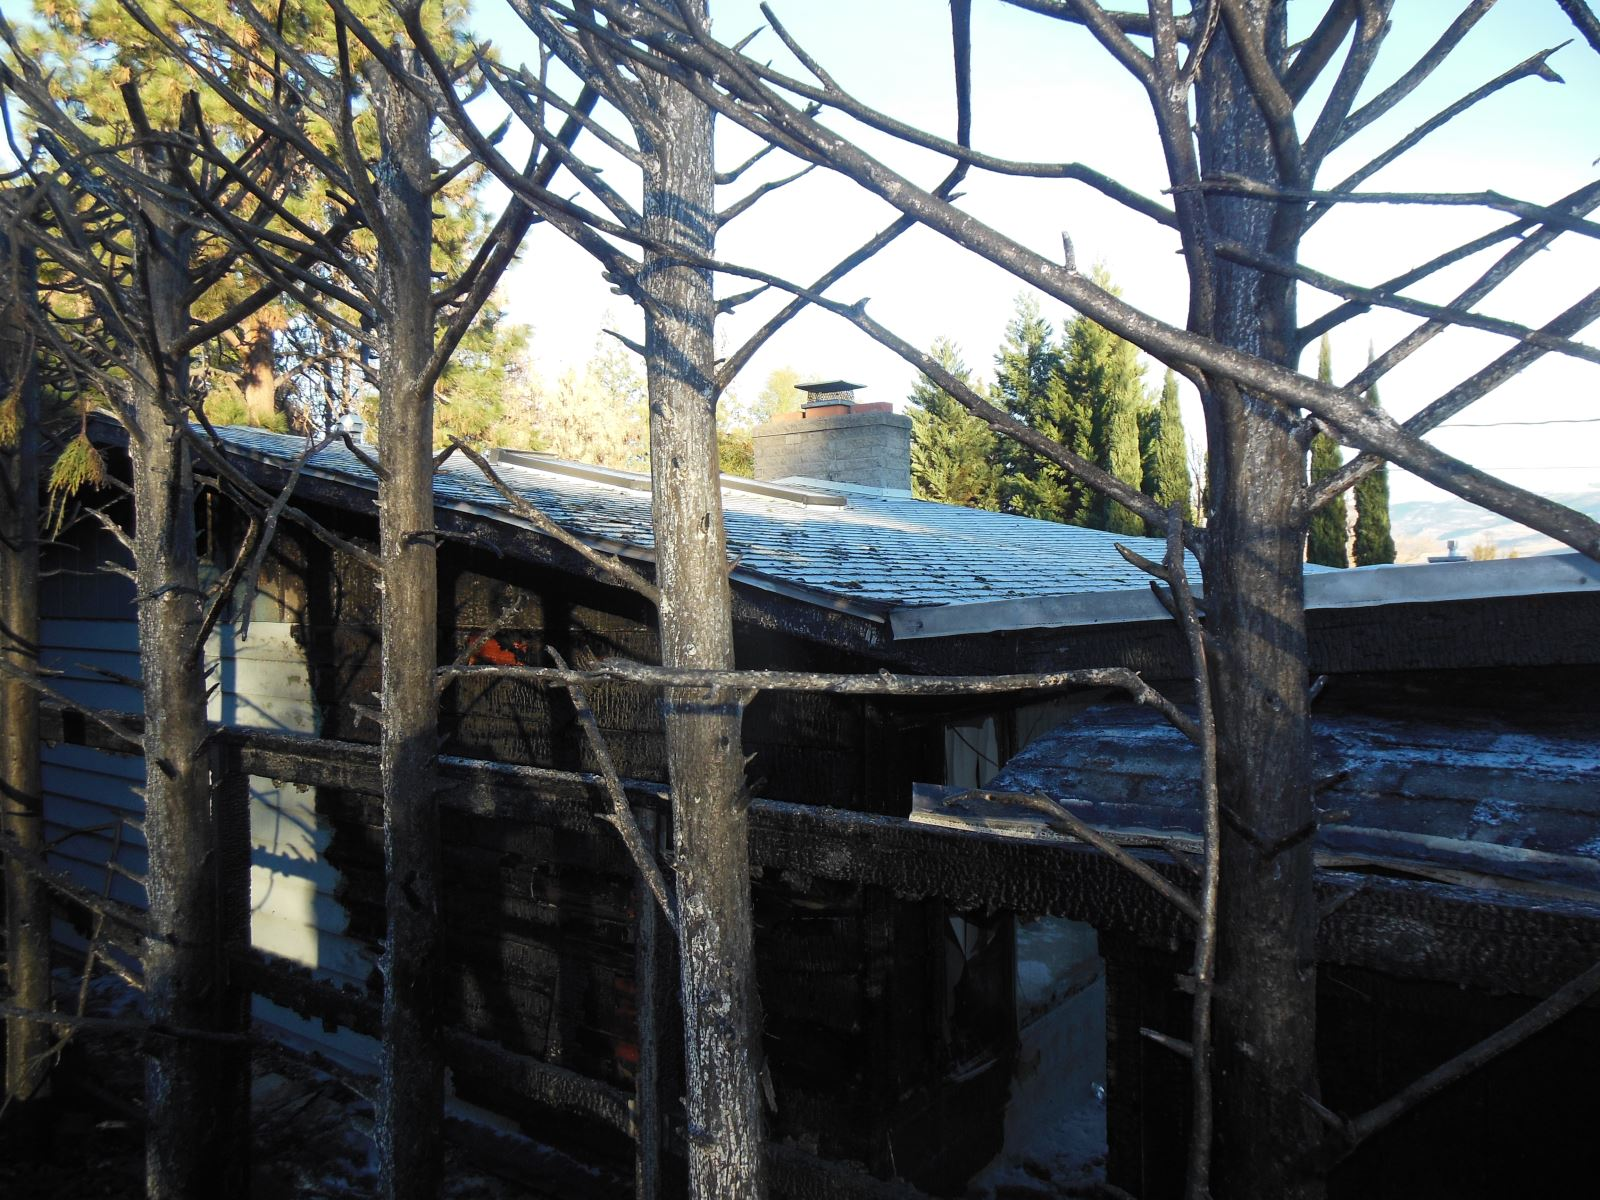 burnt arborvitae screen and home